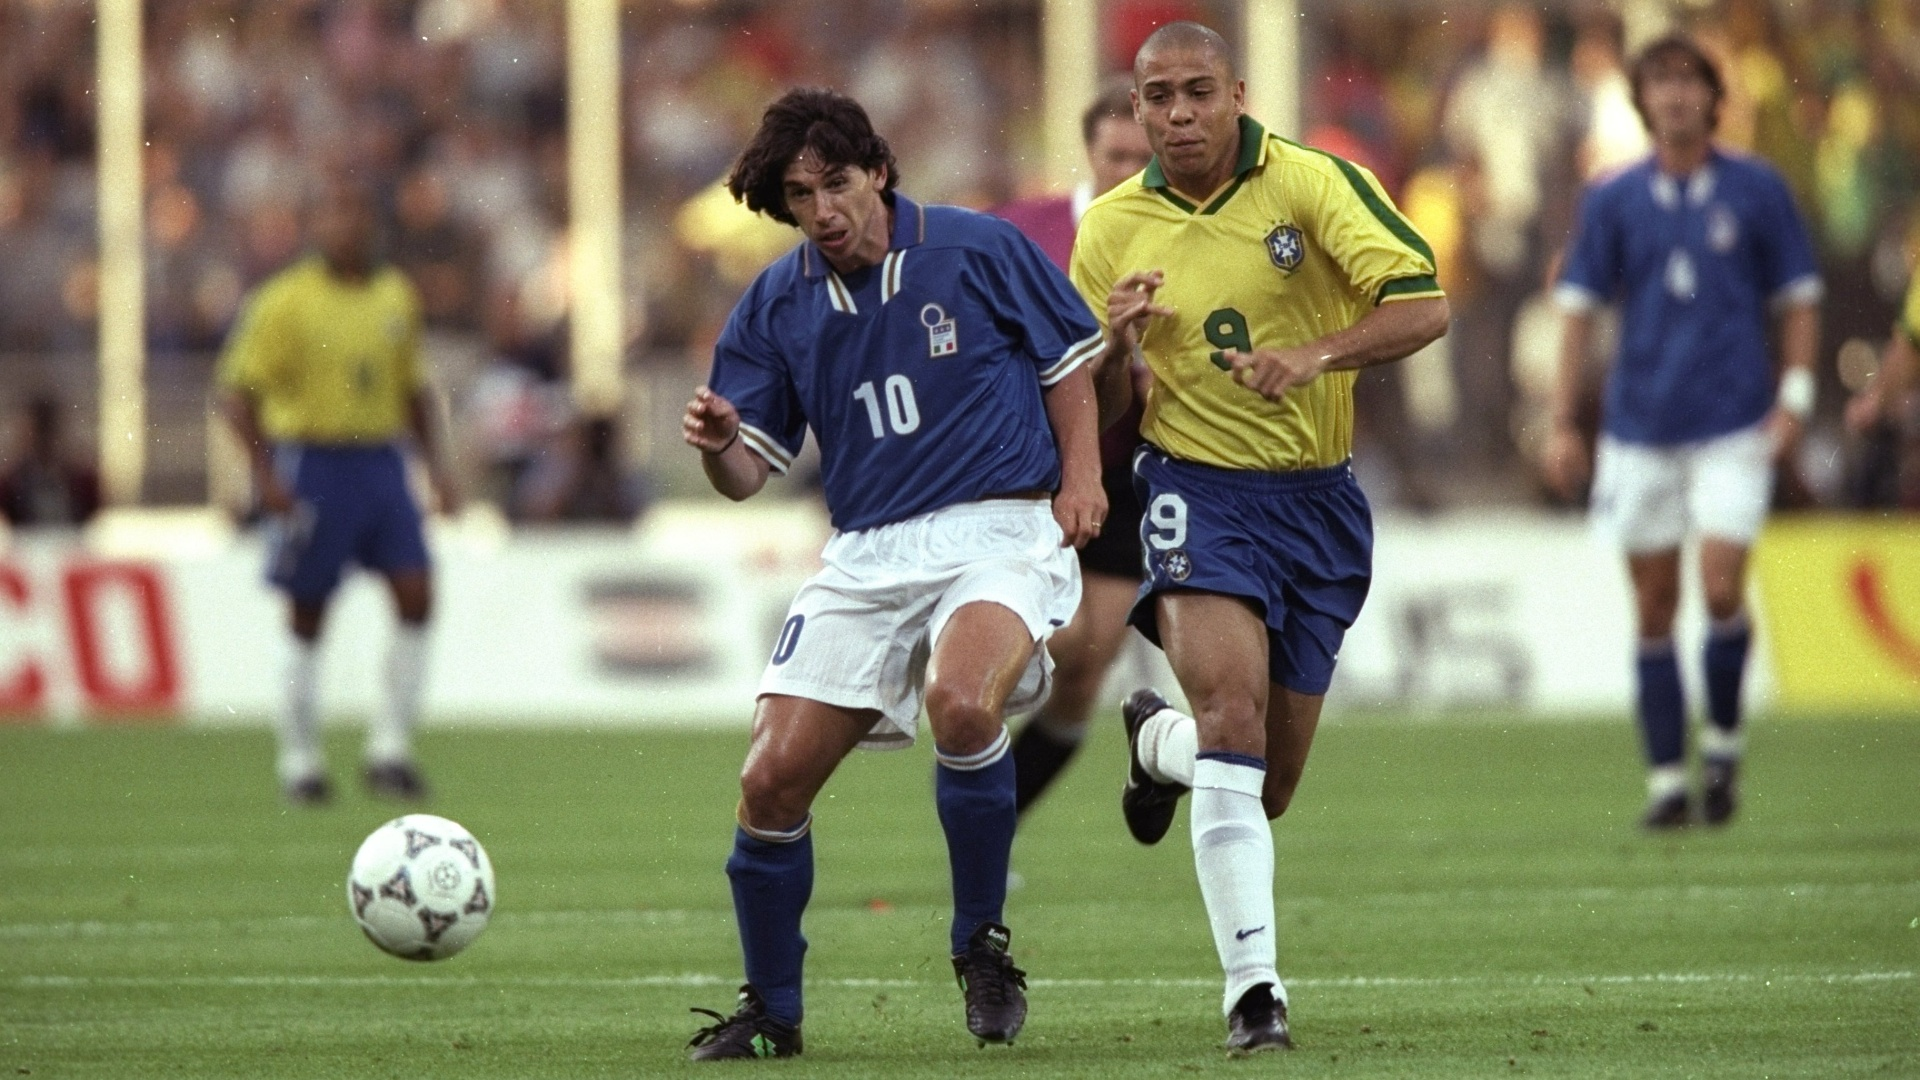 08.jun.1997 - Atacante Ronaldo (dir), do Brasil, disputa bola com Demetrio Albertini, da Itlia, durante amistoso vlido pelo Torneio de Frana